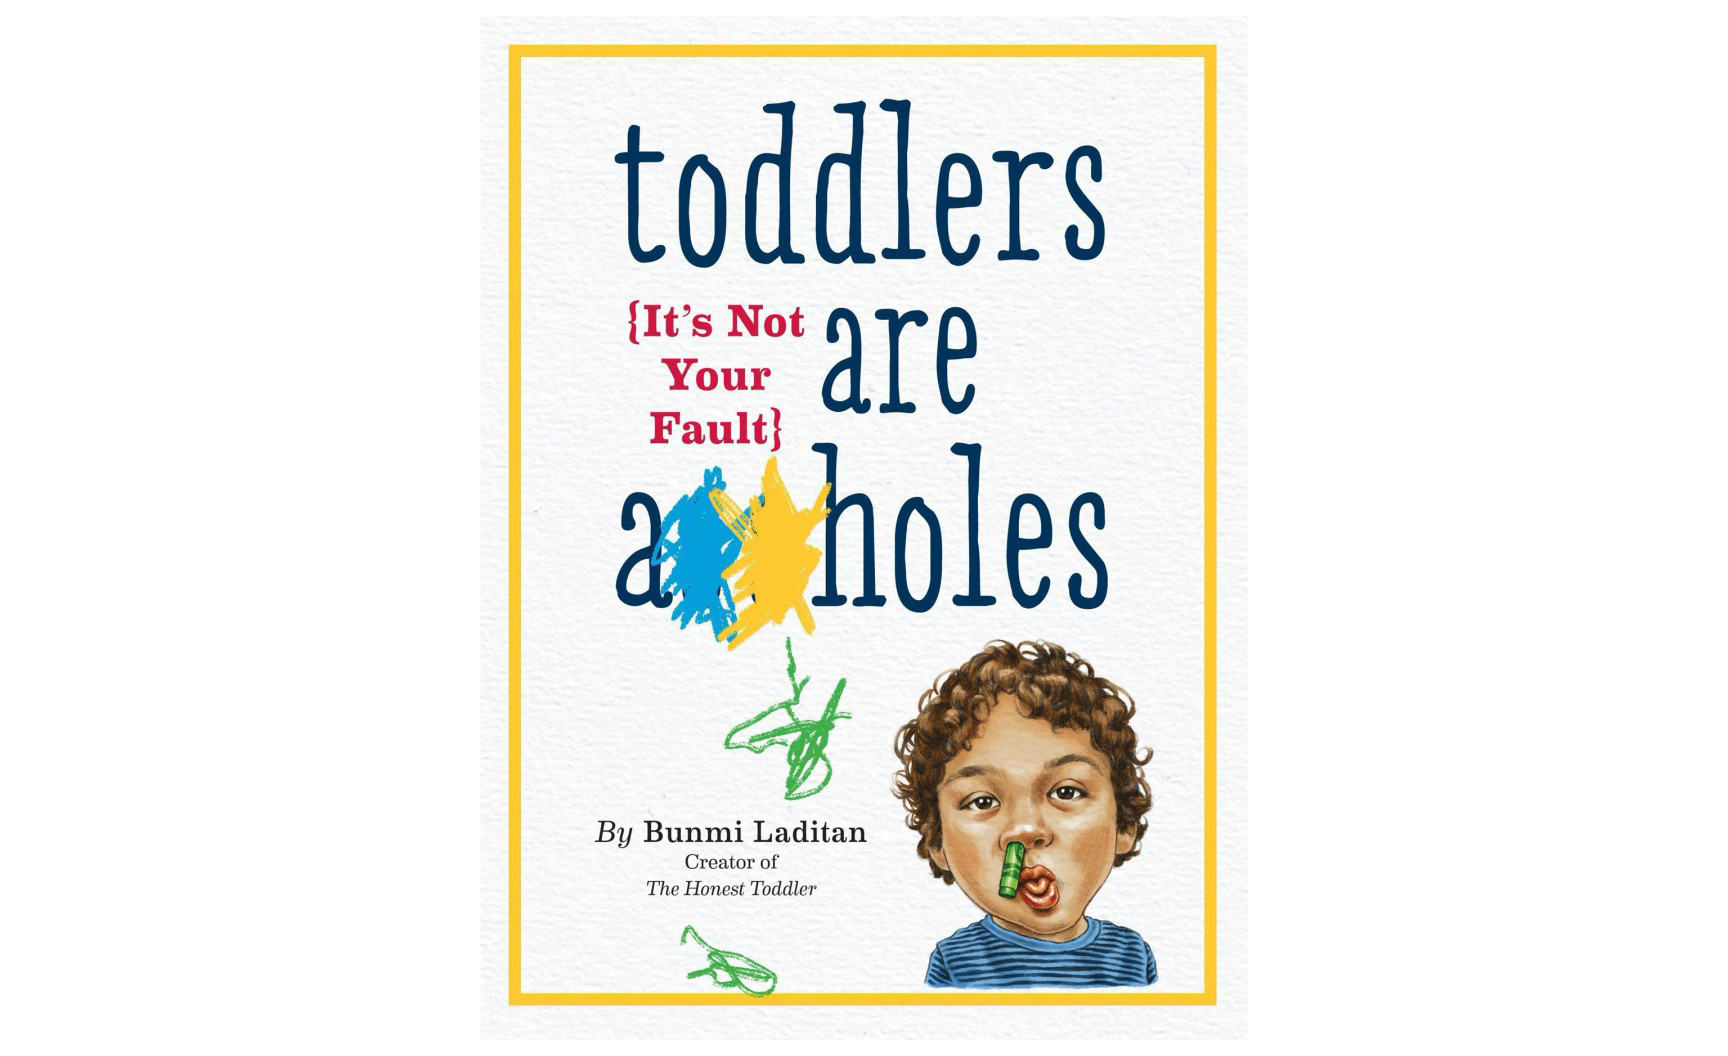 Toddlers are A**holes (It's Not Your Fault), by Bunmi Laditan